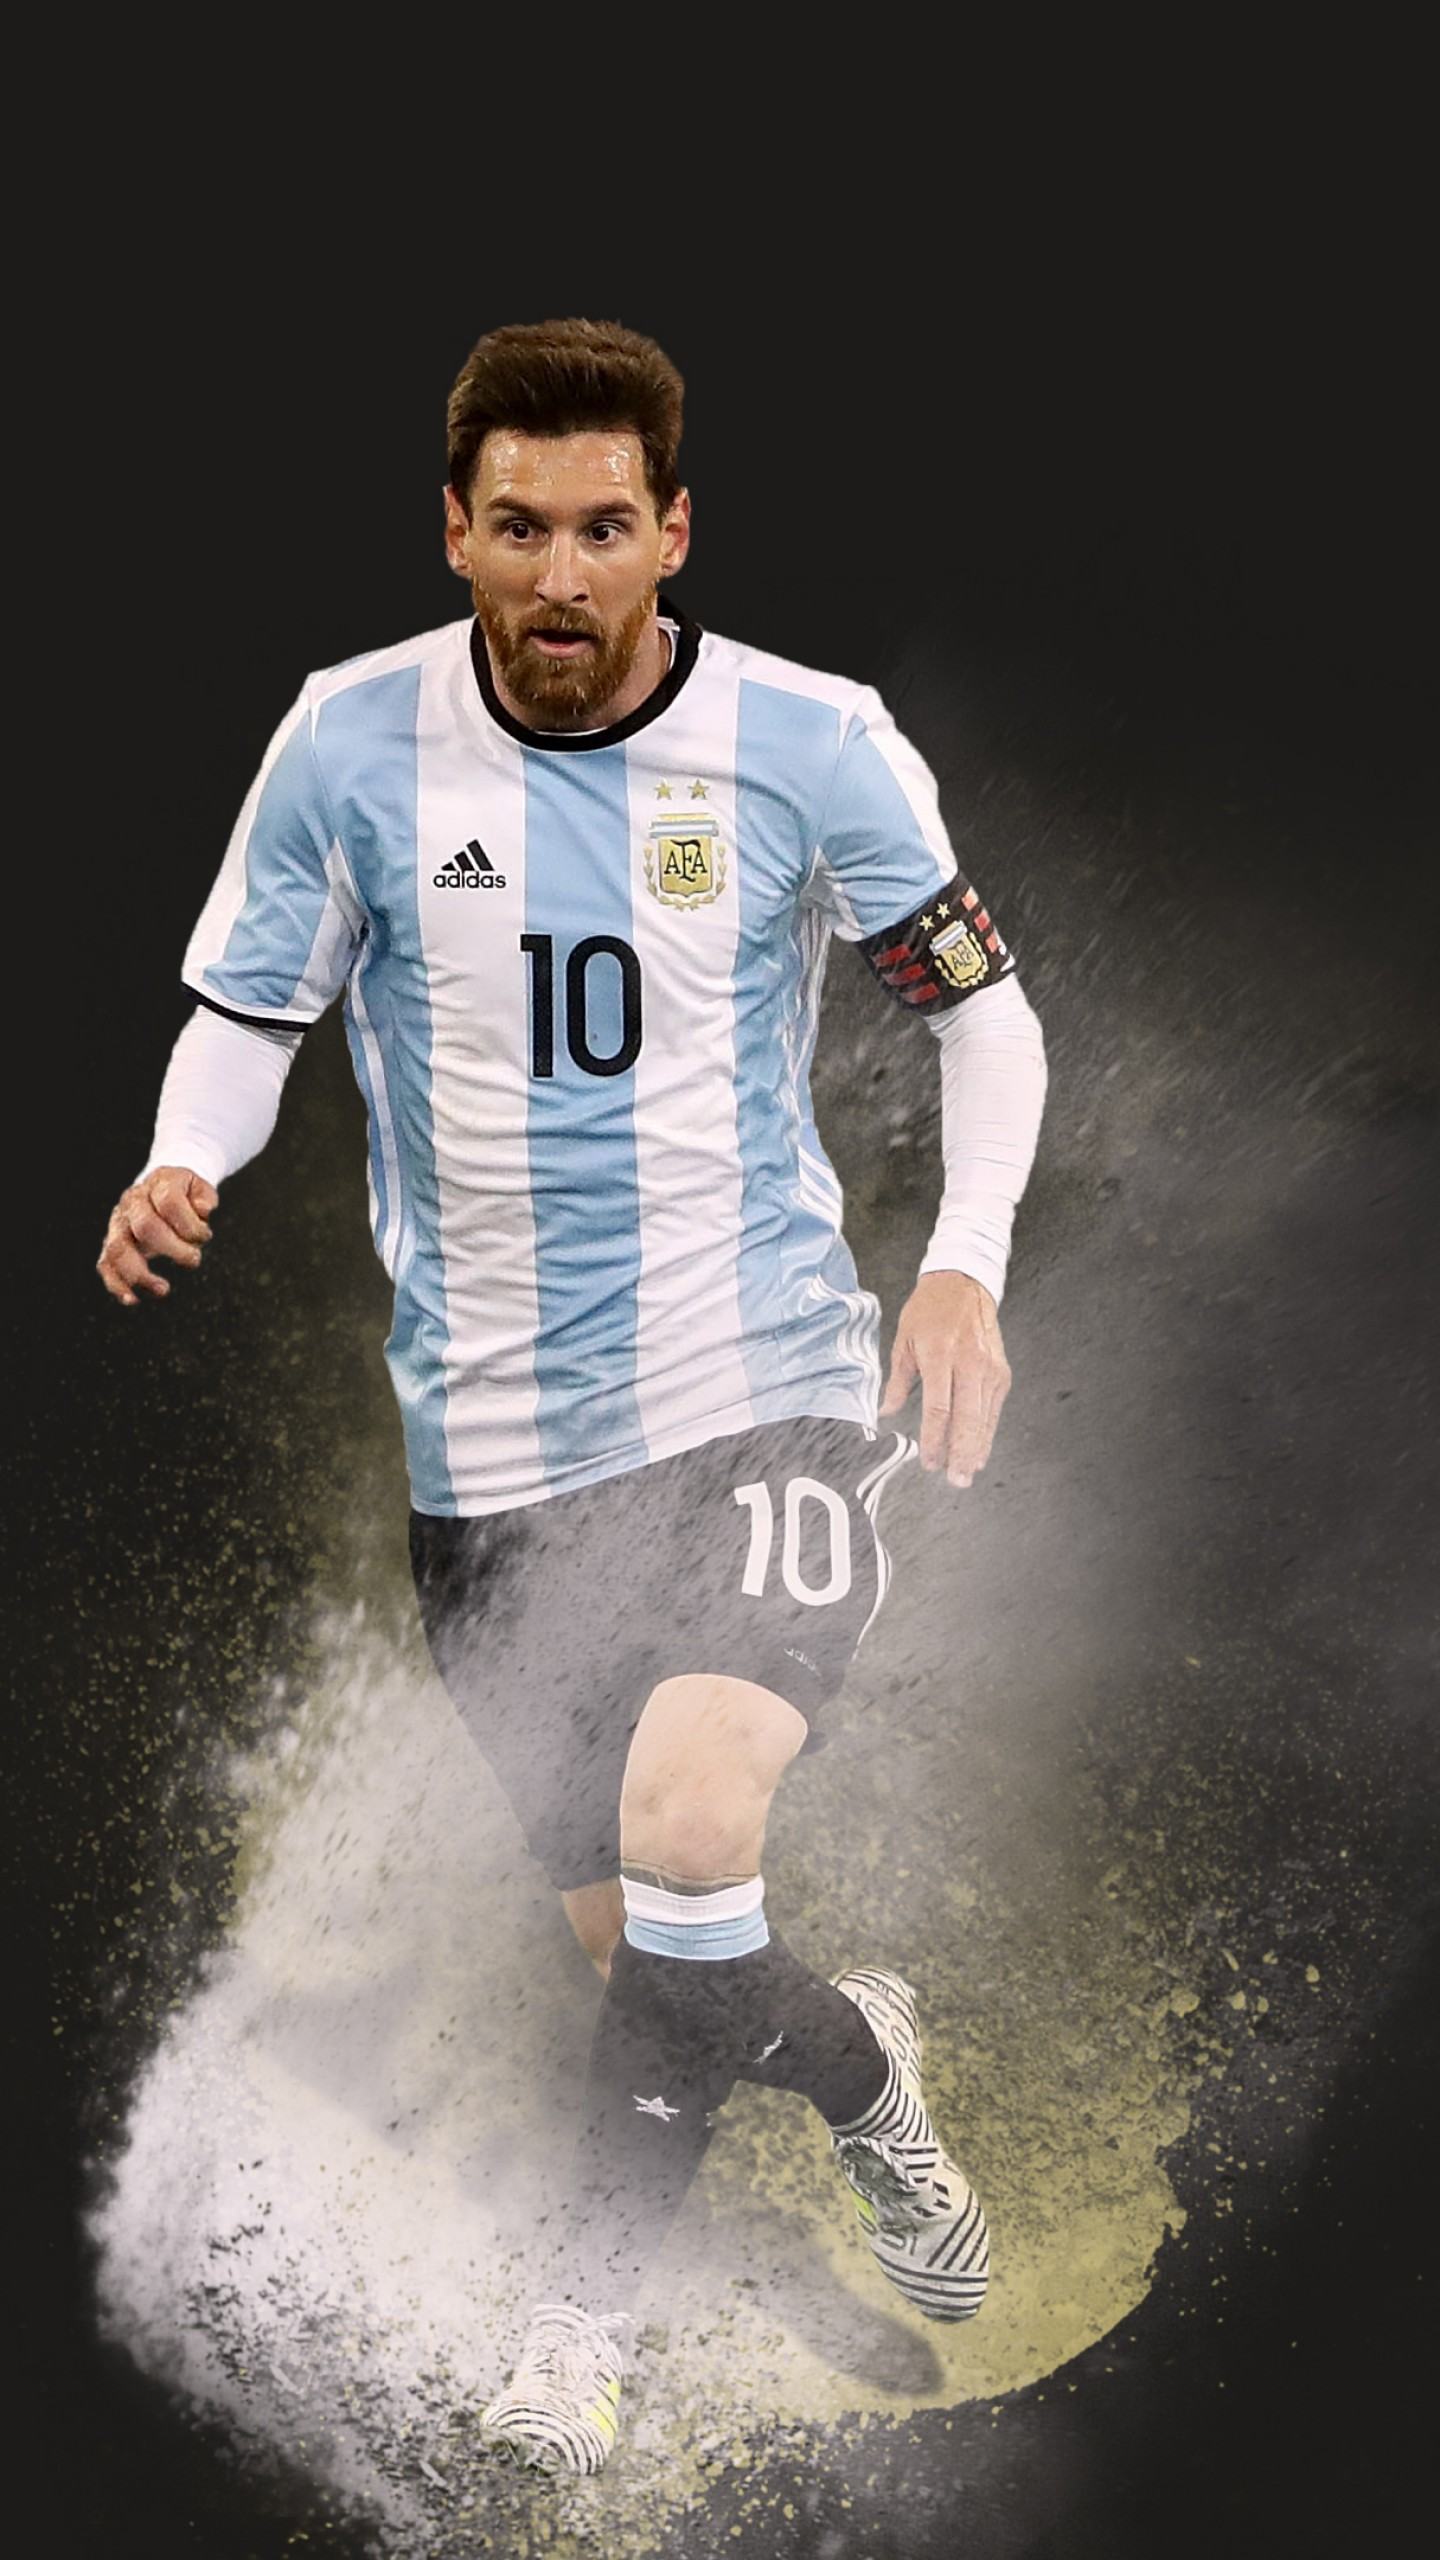 Wallpaper Lionel Messi Soccer Football 4k Sport 16301